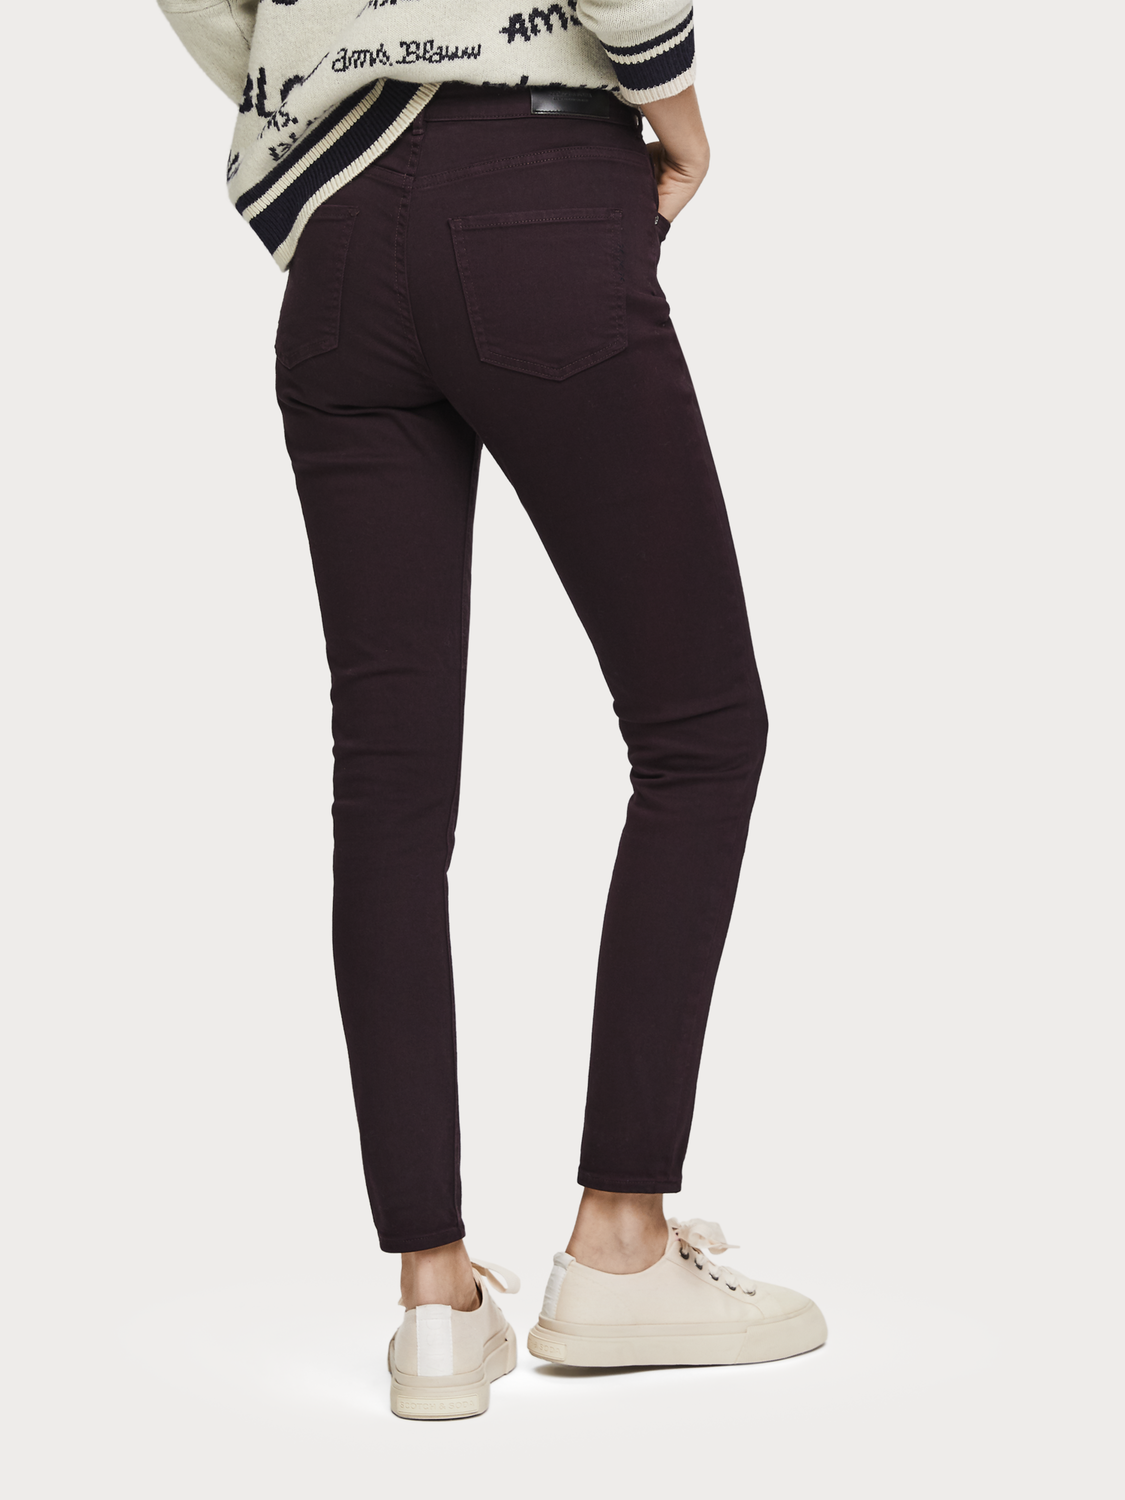 Women Haut - Garment Dyed Jeans   High rise skinny fit